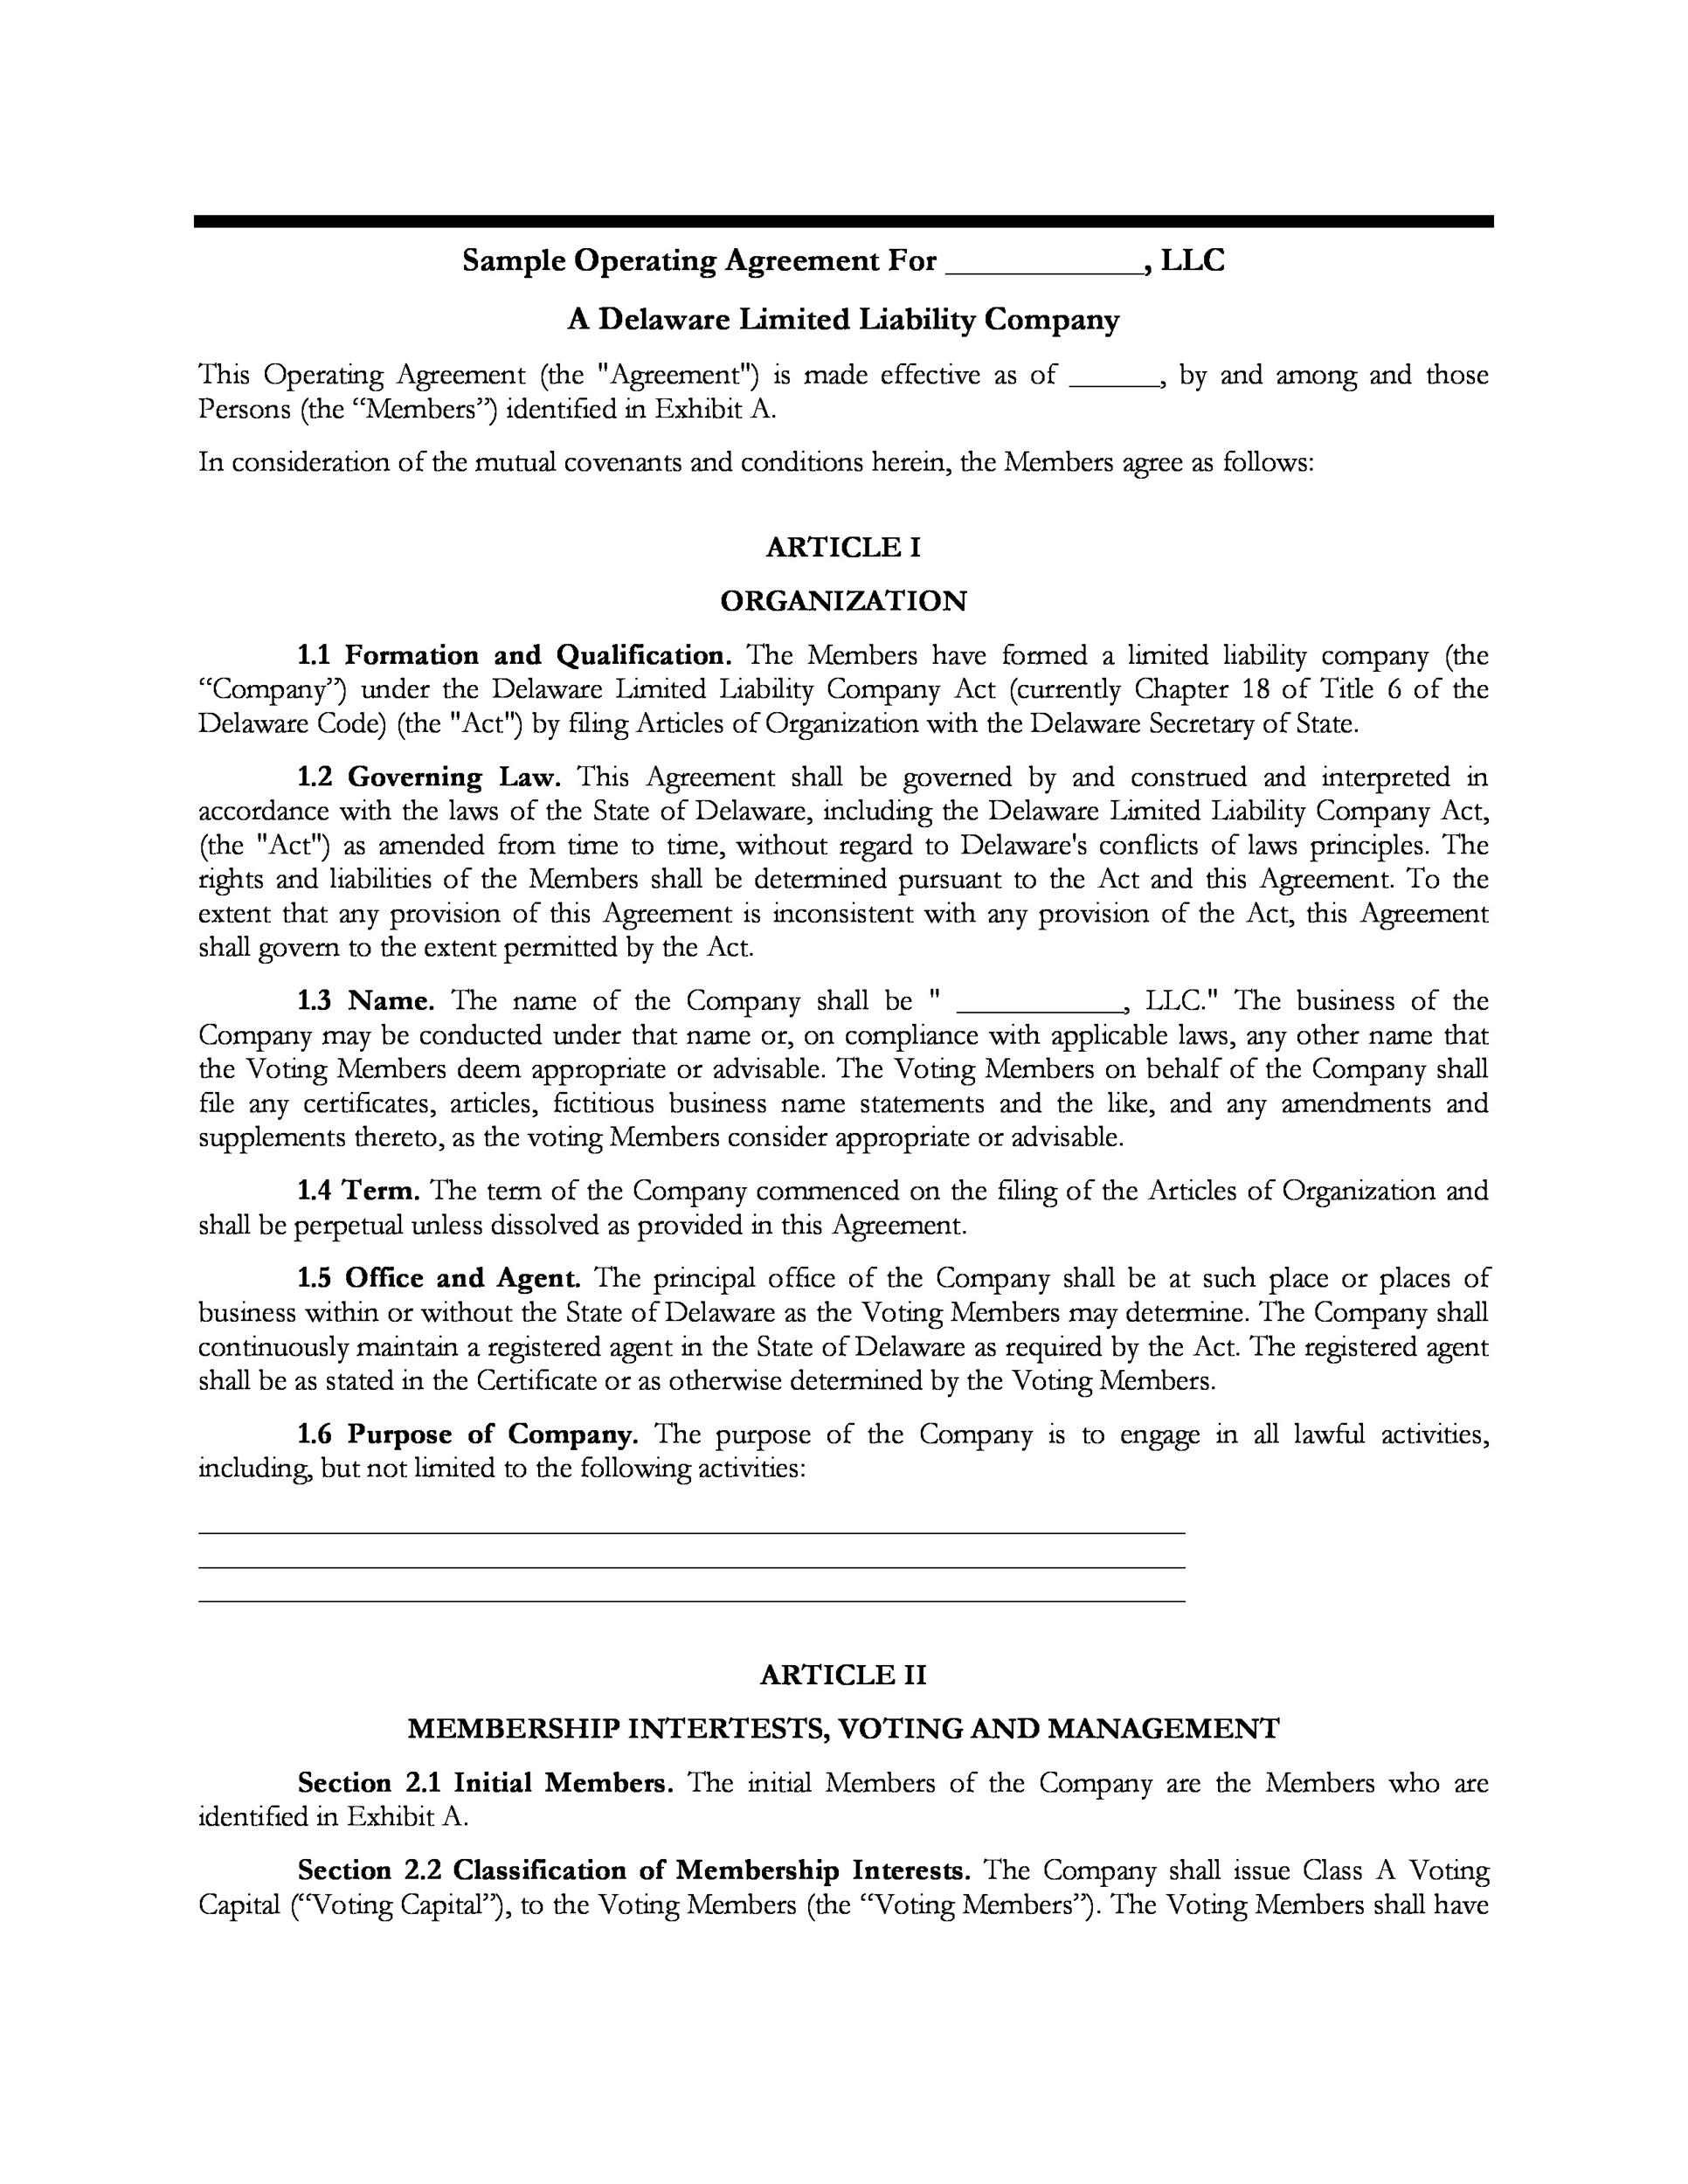 30 Professional LLC Operating Agreement Templates ᐅ ...